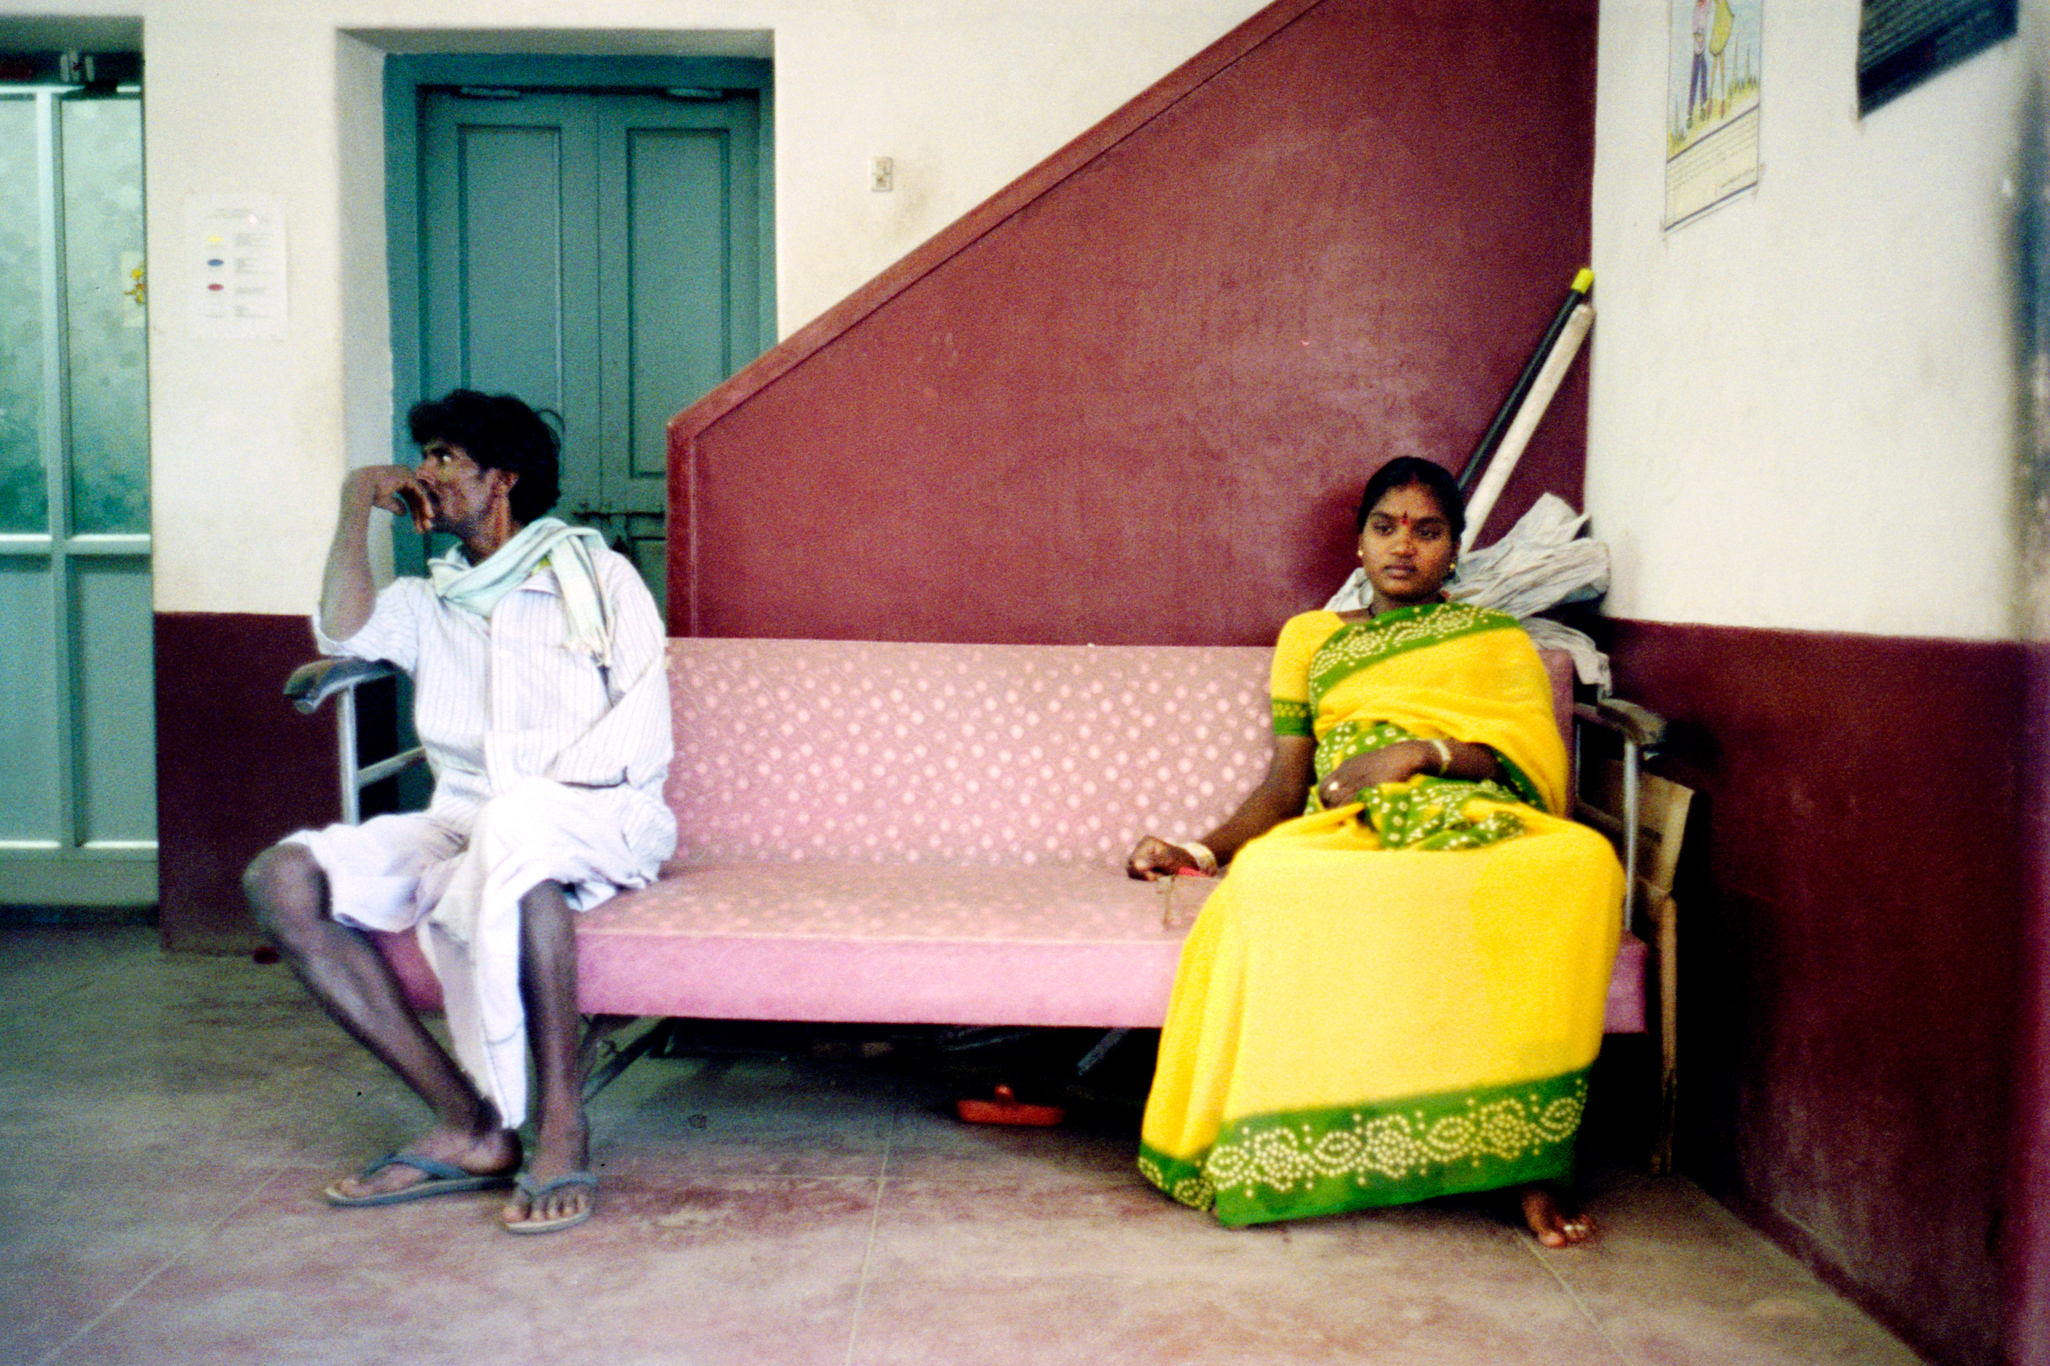 Shobha and her father wait at Asha Kirana, an HIV clinic. Shobha is 19 and has been married for little over a year. She is seven months pregnant and positive. Her husband, a truck-driver, does not want the child. One month later, Shobha will abort her child, leave her husband and return to her family.